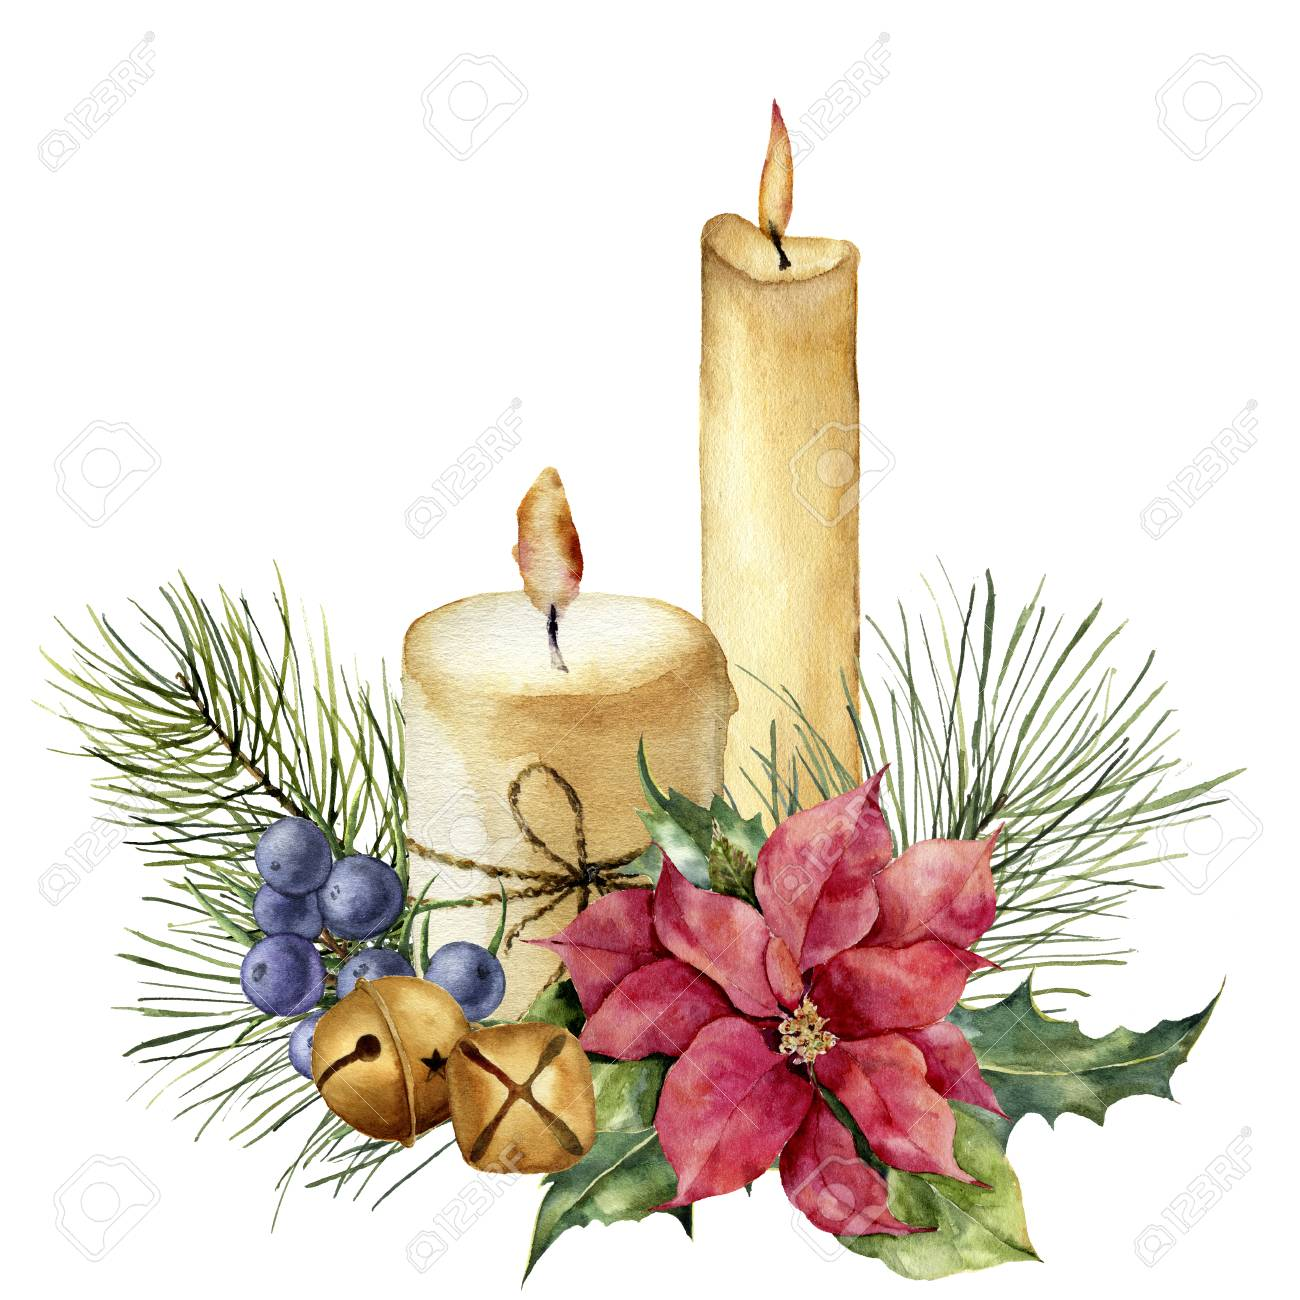 Watercolor Christmas candles with holiday decor. Hand painted floral composition with leaves, poinsettia, bells, juniper berries isolated on white background. Botanical illustration for design. - 100769267